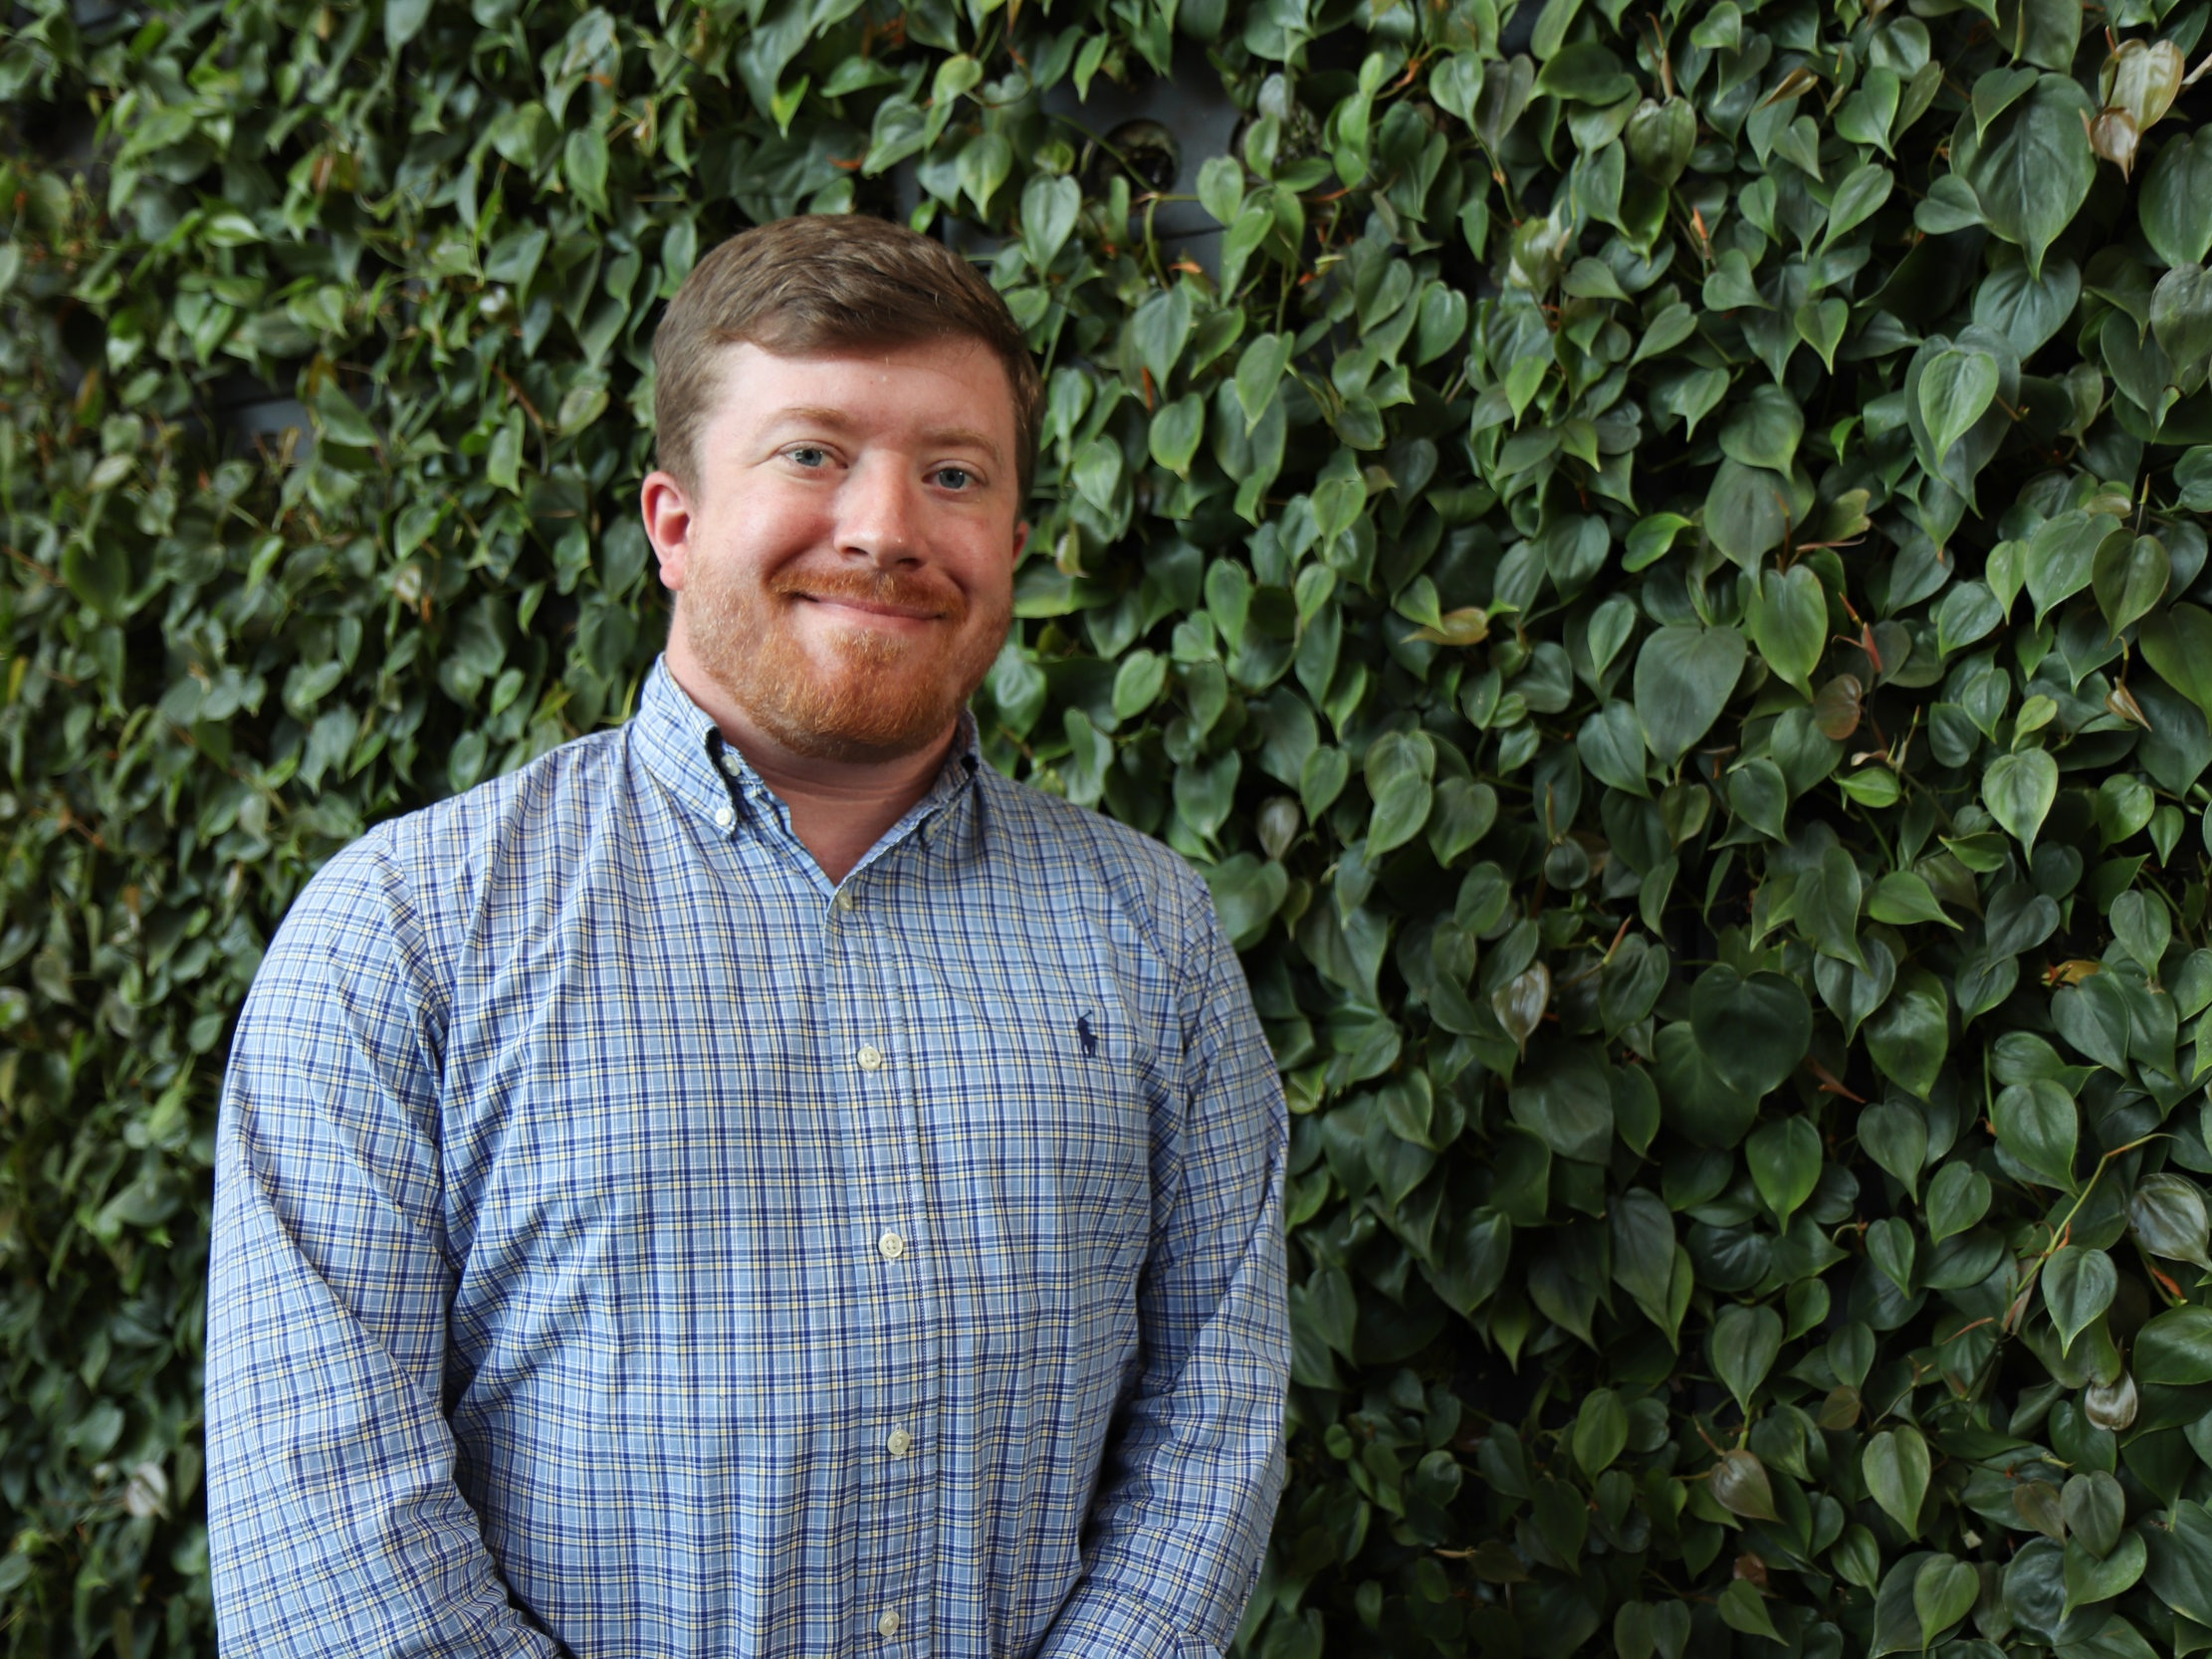 Assistant Executive Director of Educational Programs (Interfraternity): - Chris Lucas | Alpha Tau OmegaAdvisor to the Interfraternity Council, Auburn University - Chris oversees educational programs targeted towards council officers in Interfraternity Councils.